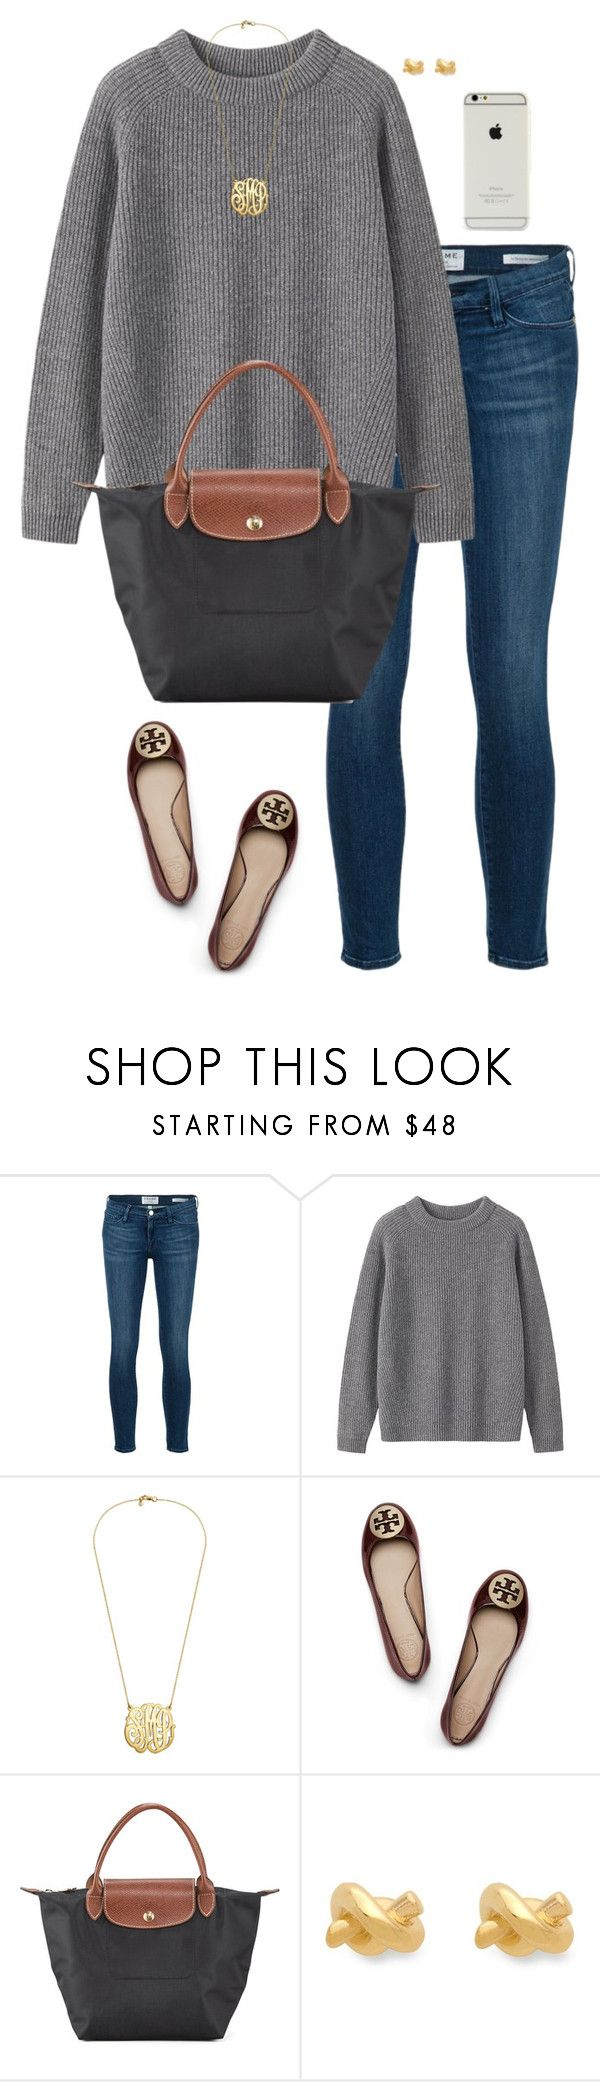 """Fallin into November"" by sc-prep-girl ❤ liked on Polyvore featuring moda, Frame Denim, Toast, Tory Burch, Longchamp ve Kate Spade"